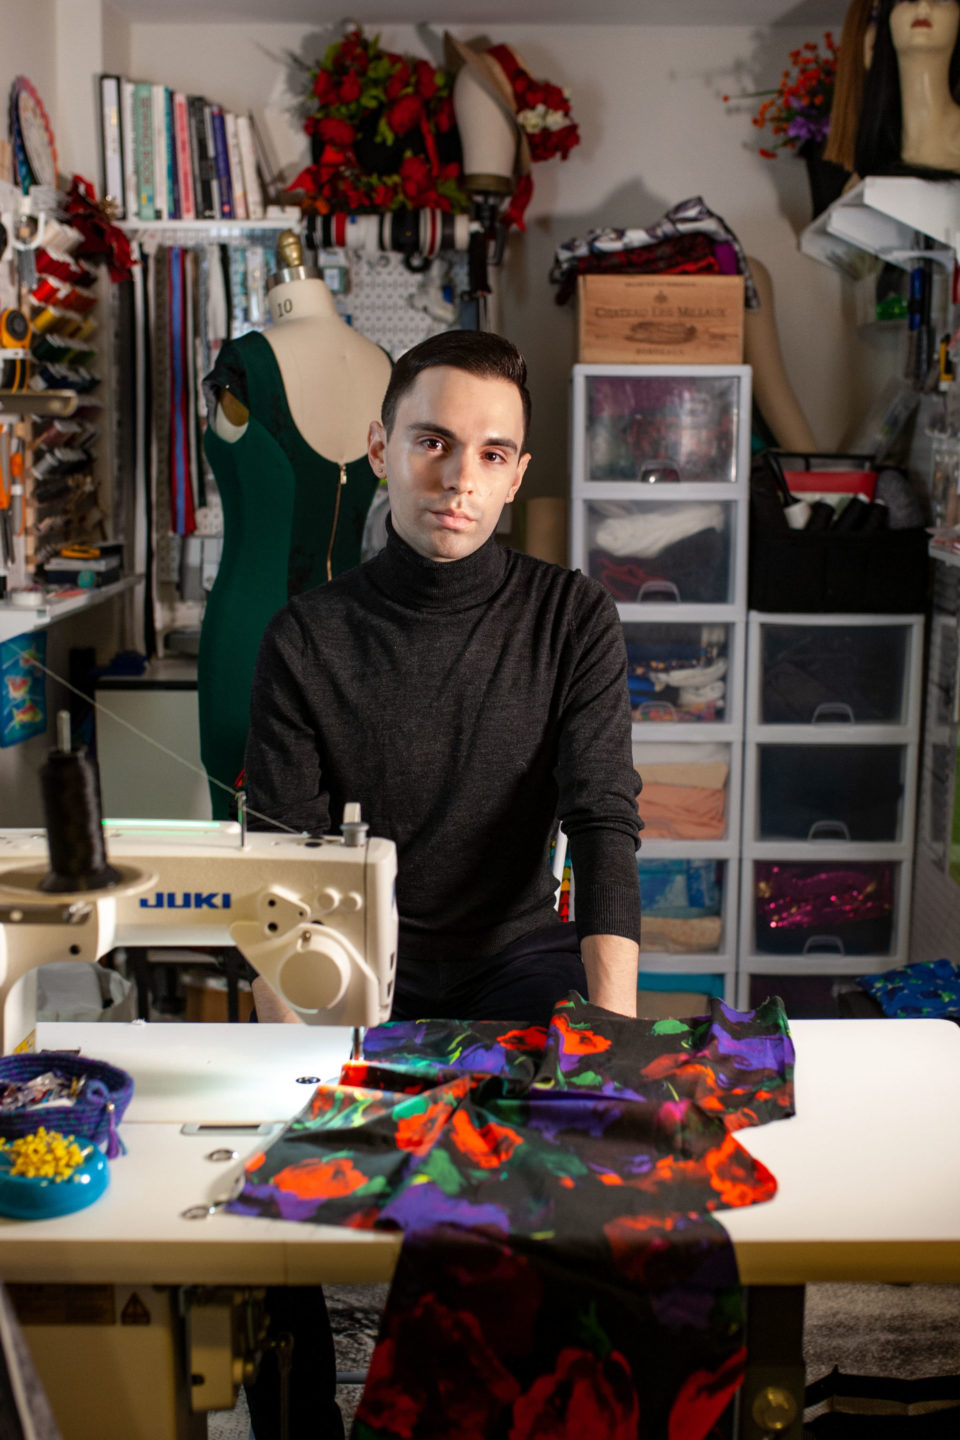 JC Resident Tyler Competes on Project Runway Season 18